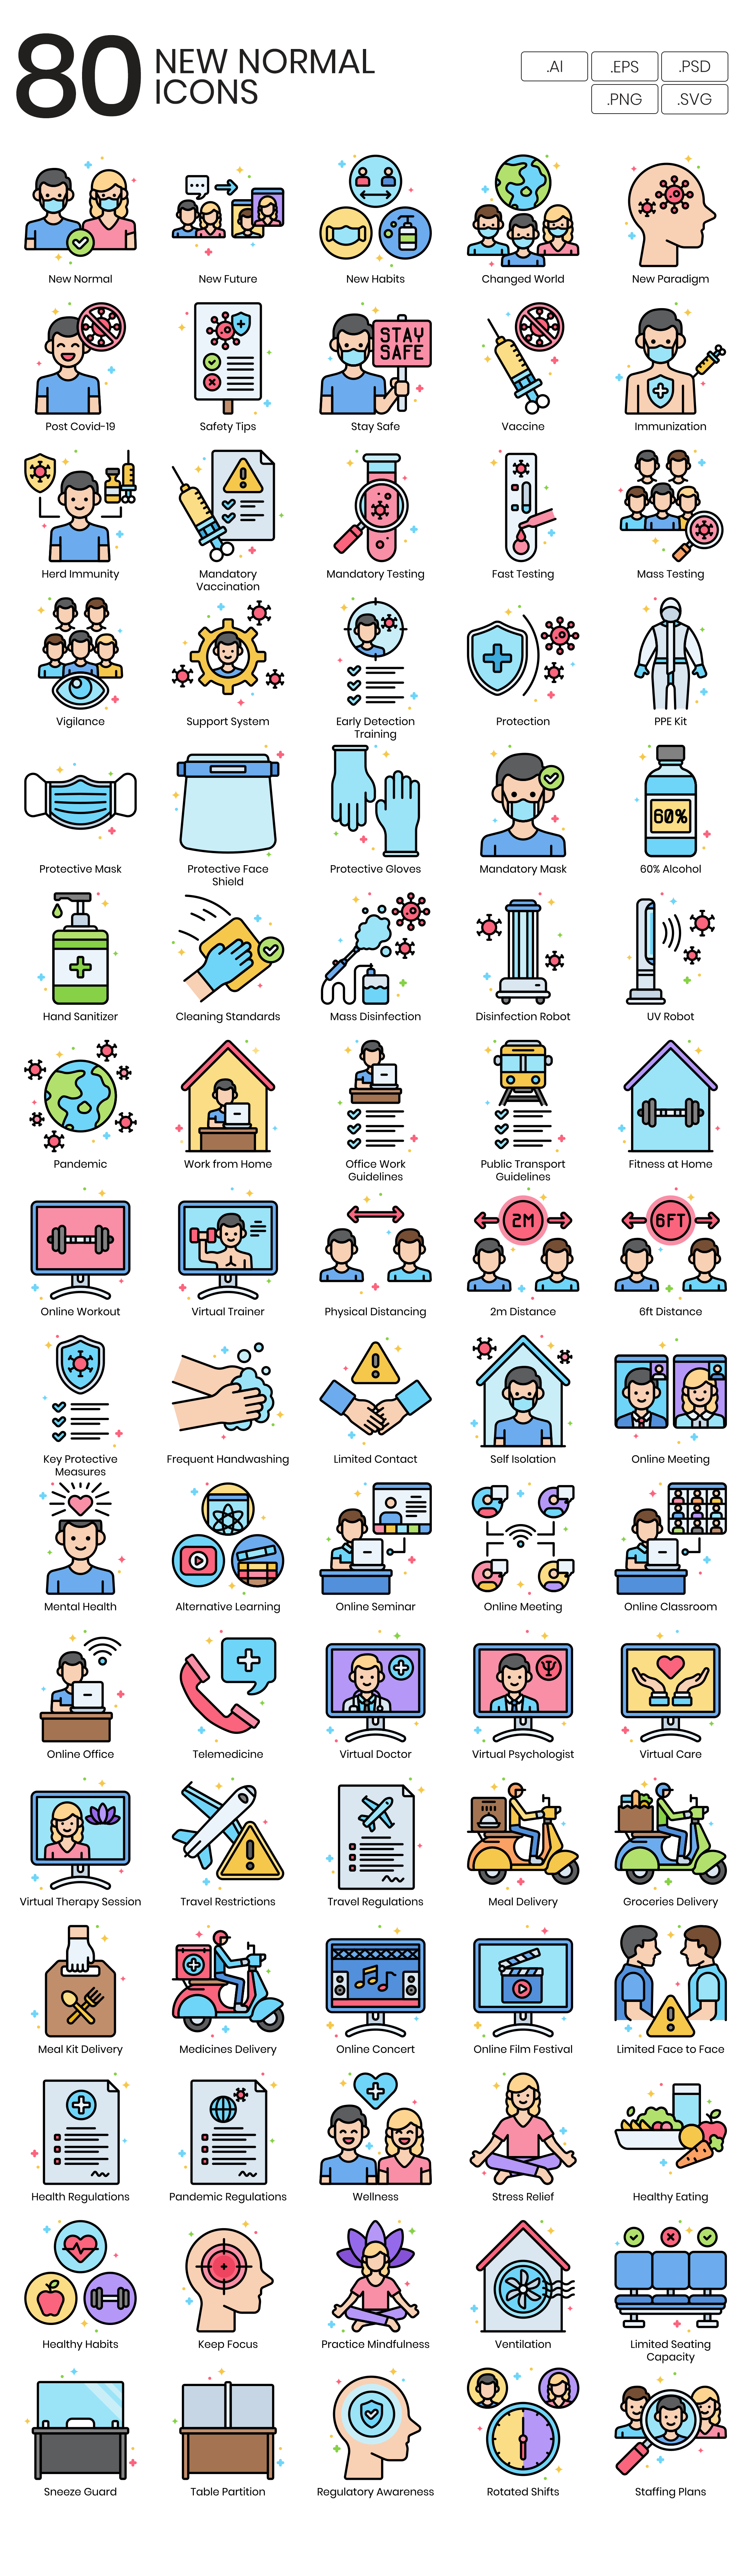 Preview Image for New Normal Vector Icons